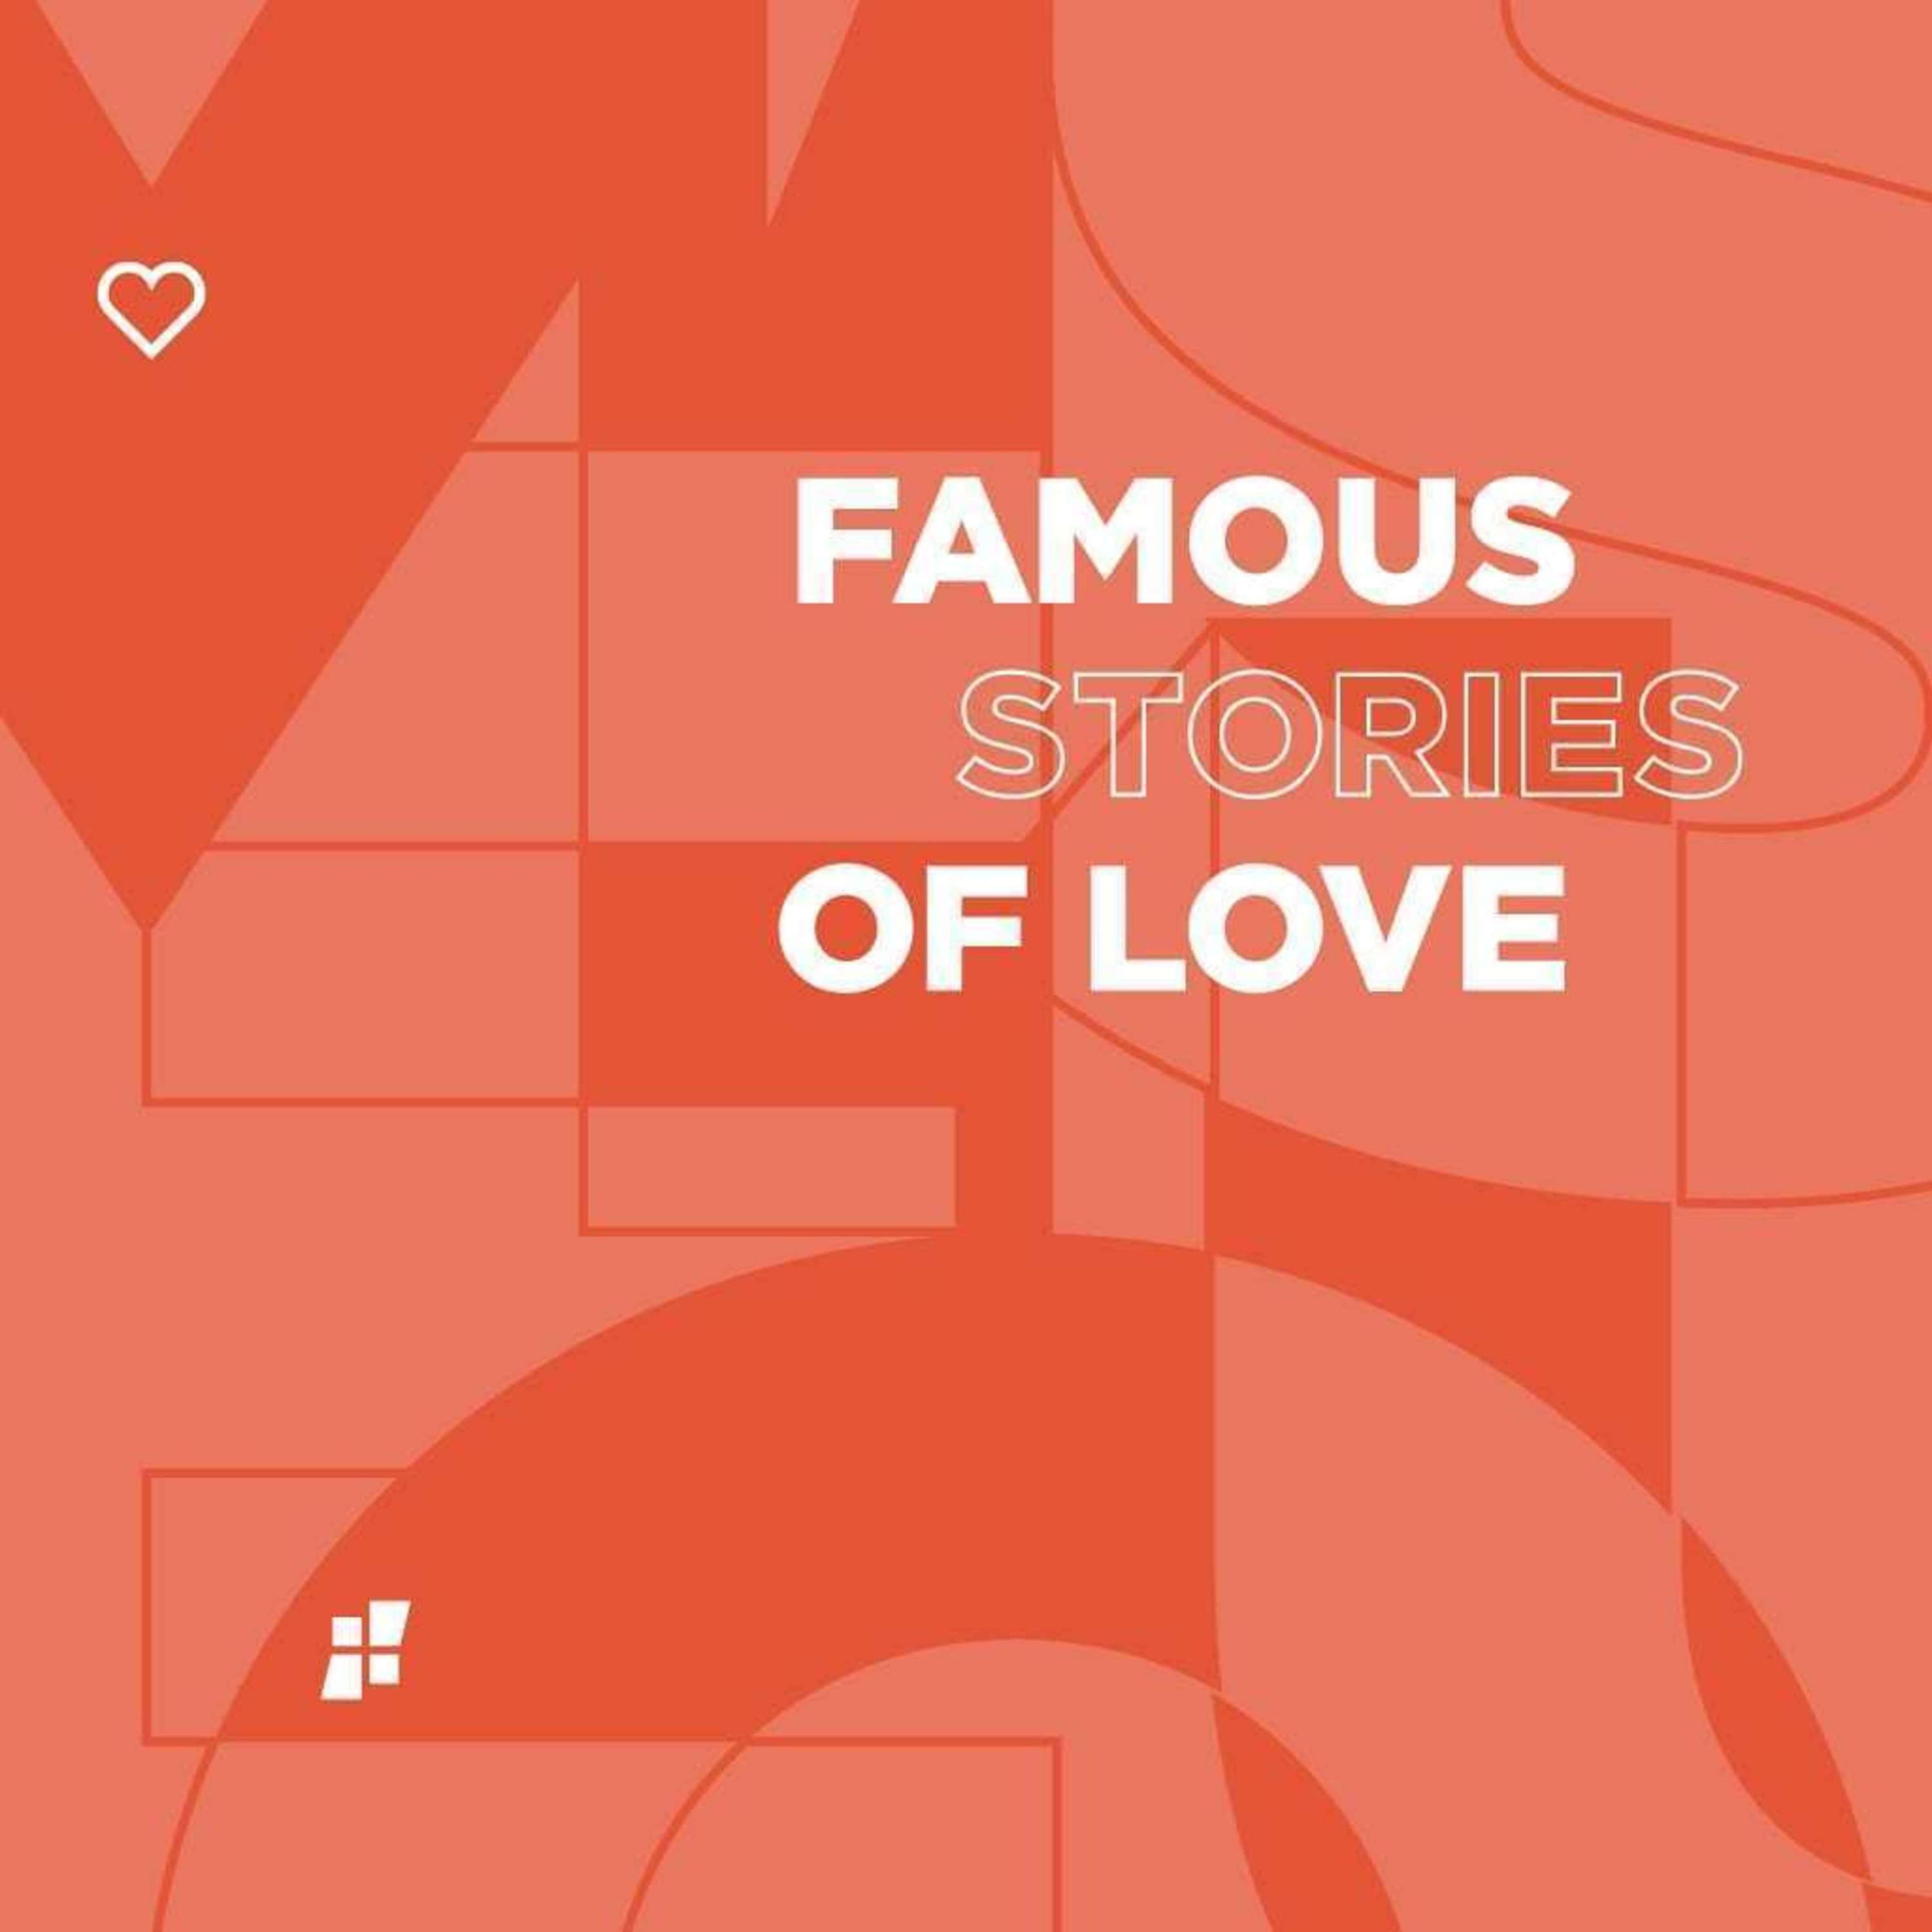 Famous Stories of Love - Jesus Heals a Paralytic